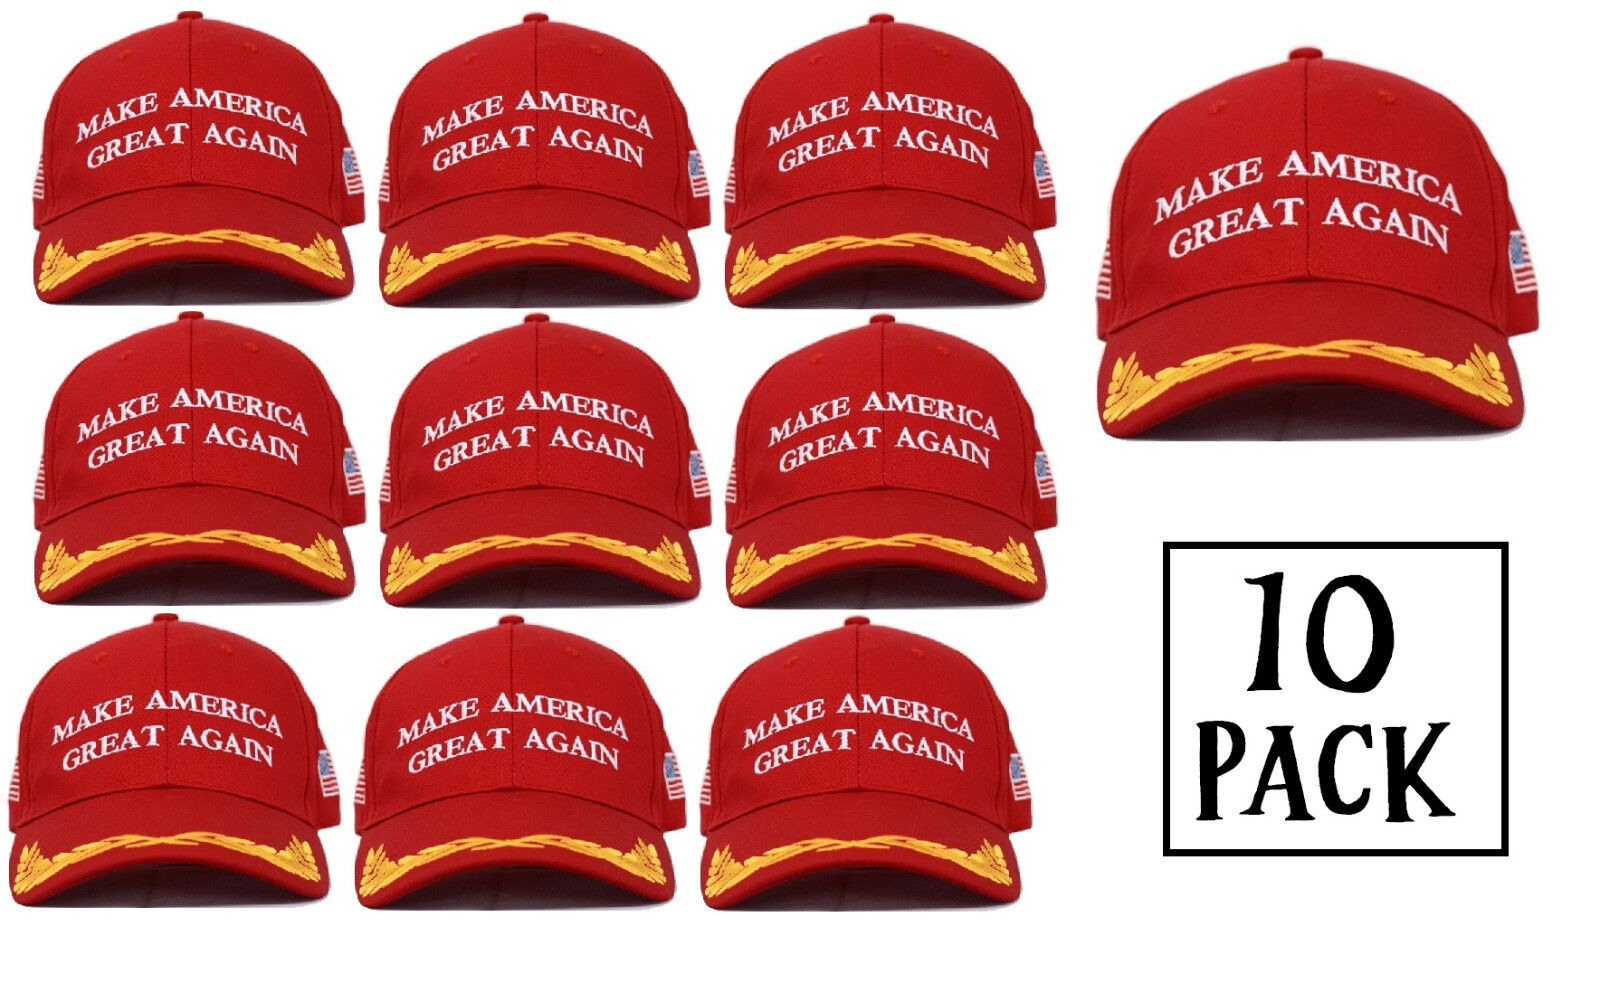 MAGA Red Embroidered Military Presidential Make America Great Again Hat 10-Pack Clothing, Shoes & Accessories